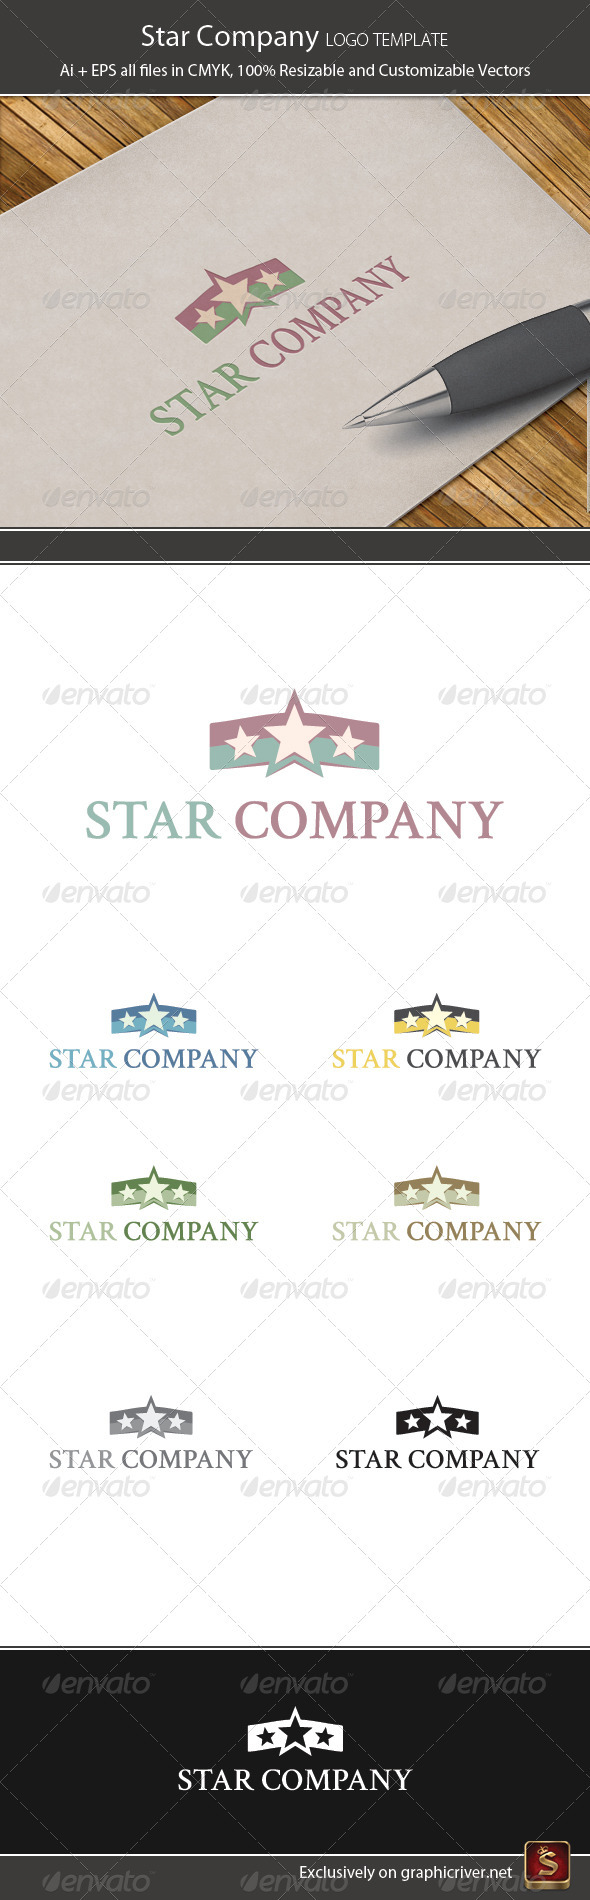 Star Company Logo Template - Vector Abstract